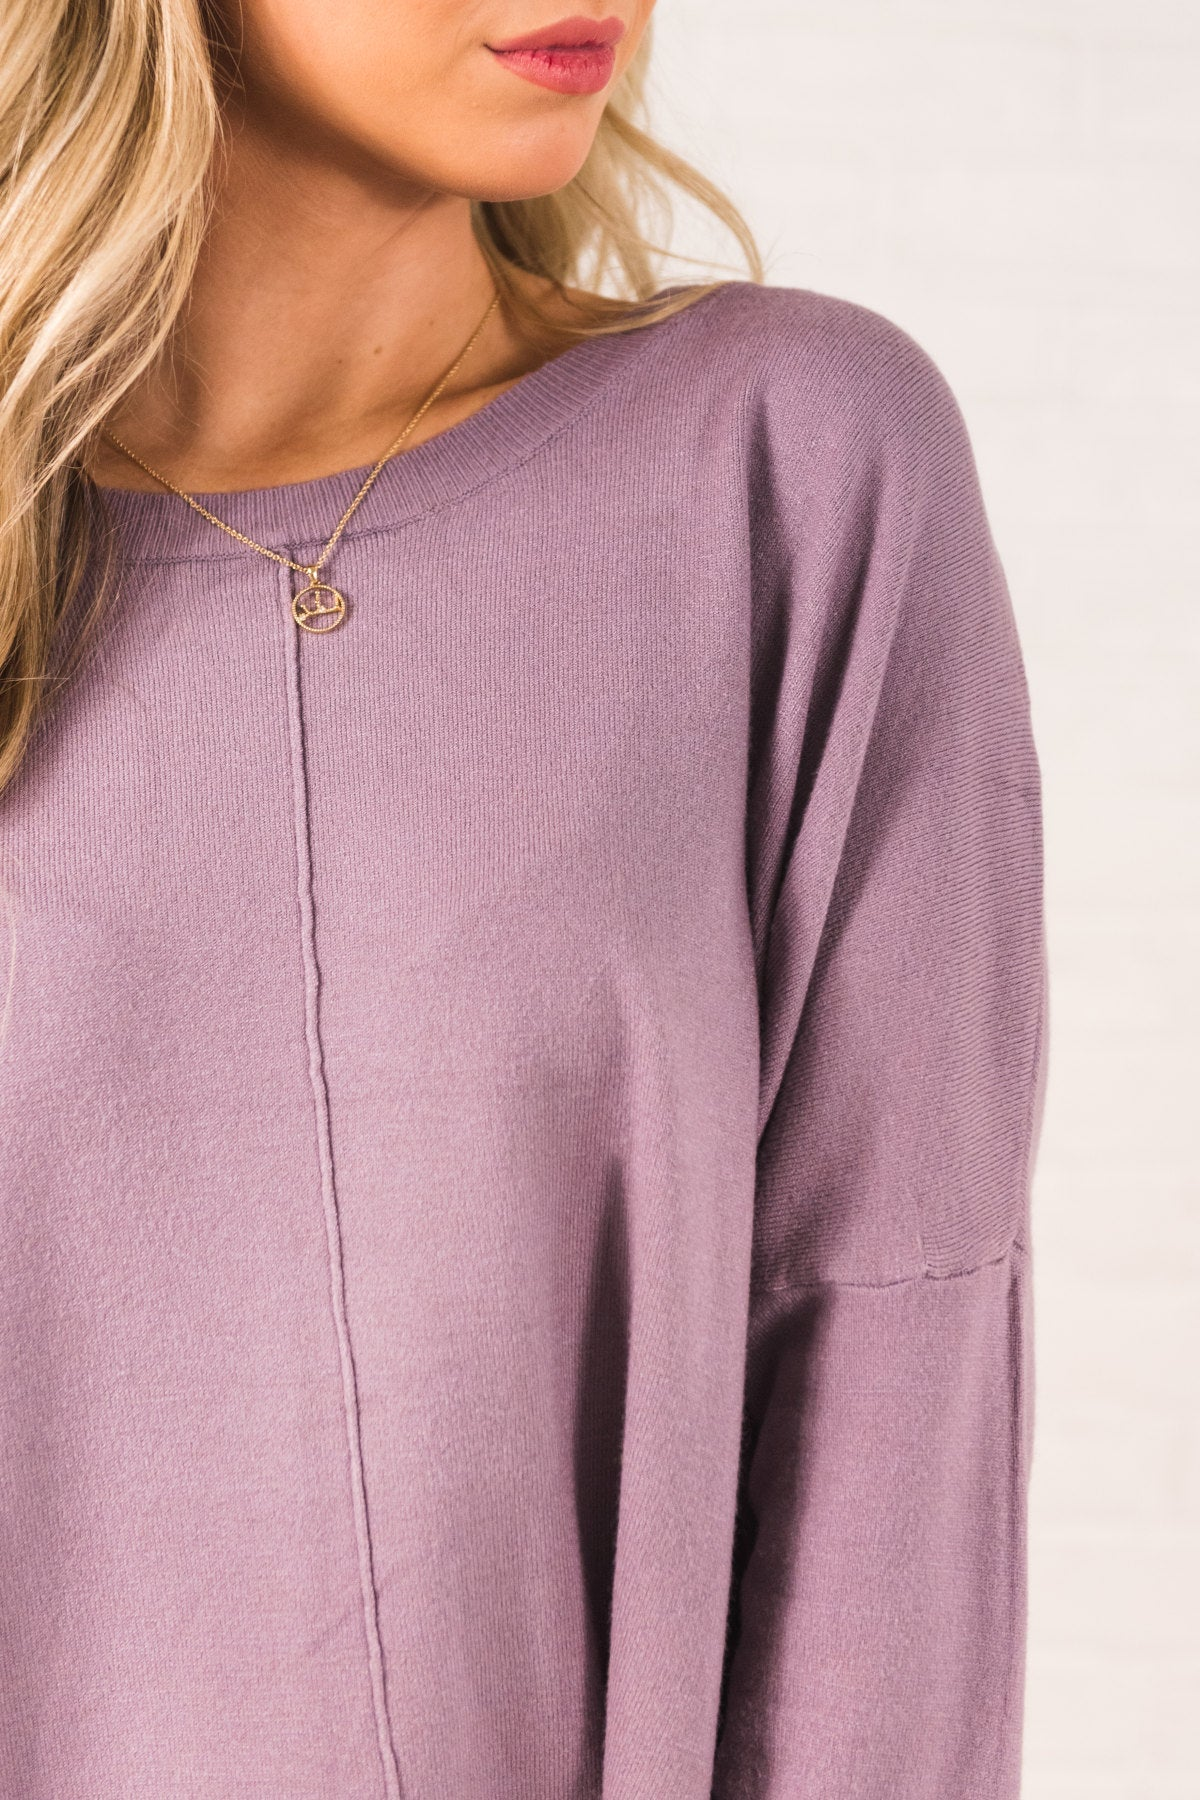 Lavender Purple Cute Oversized High Low Hem Boutique Sweaters for Women 51357a4bb